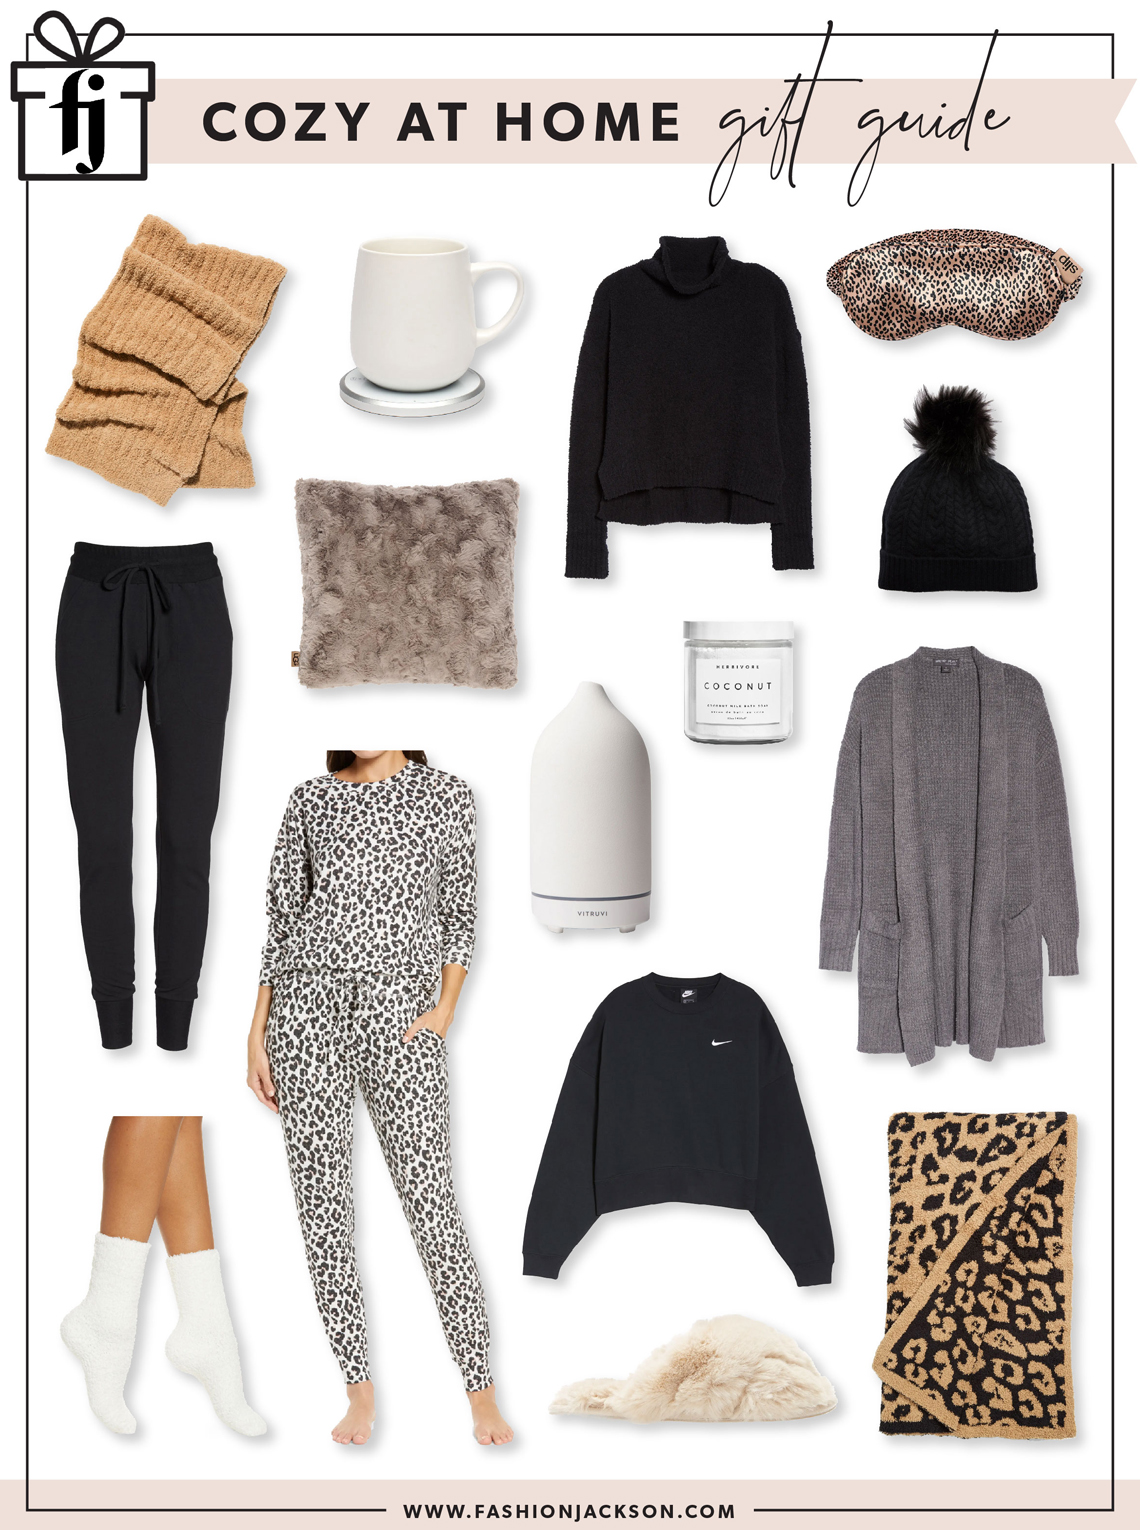 Fashion Jackson Cozy at Home Nordstrom Holiday Gift Guide